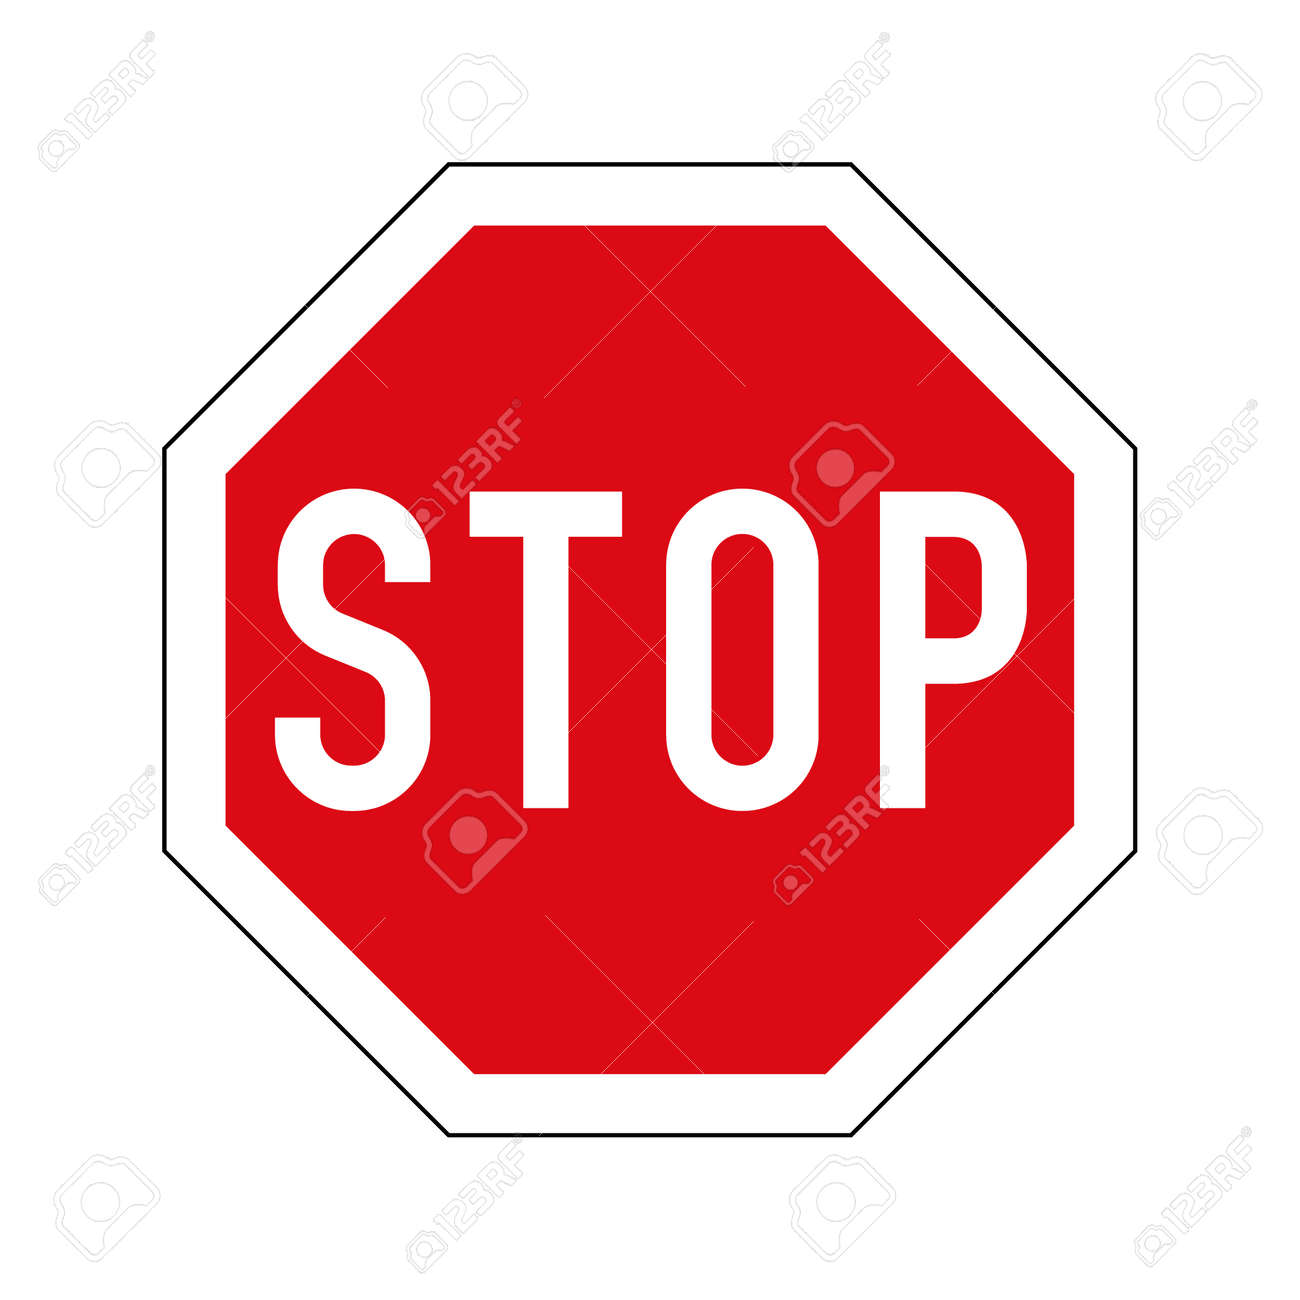 European variant of stop road sign. Red octagon with white border and stop text. - 154276961